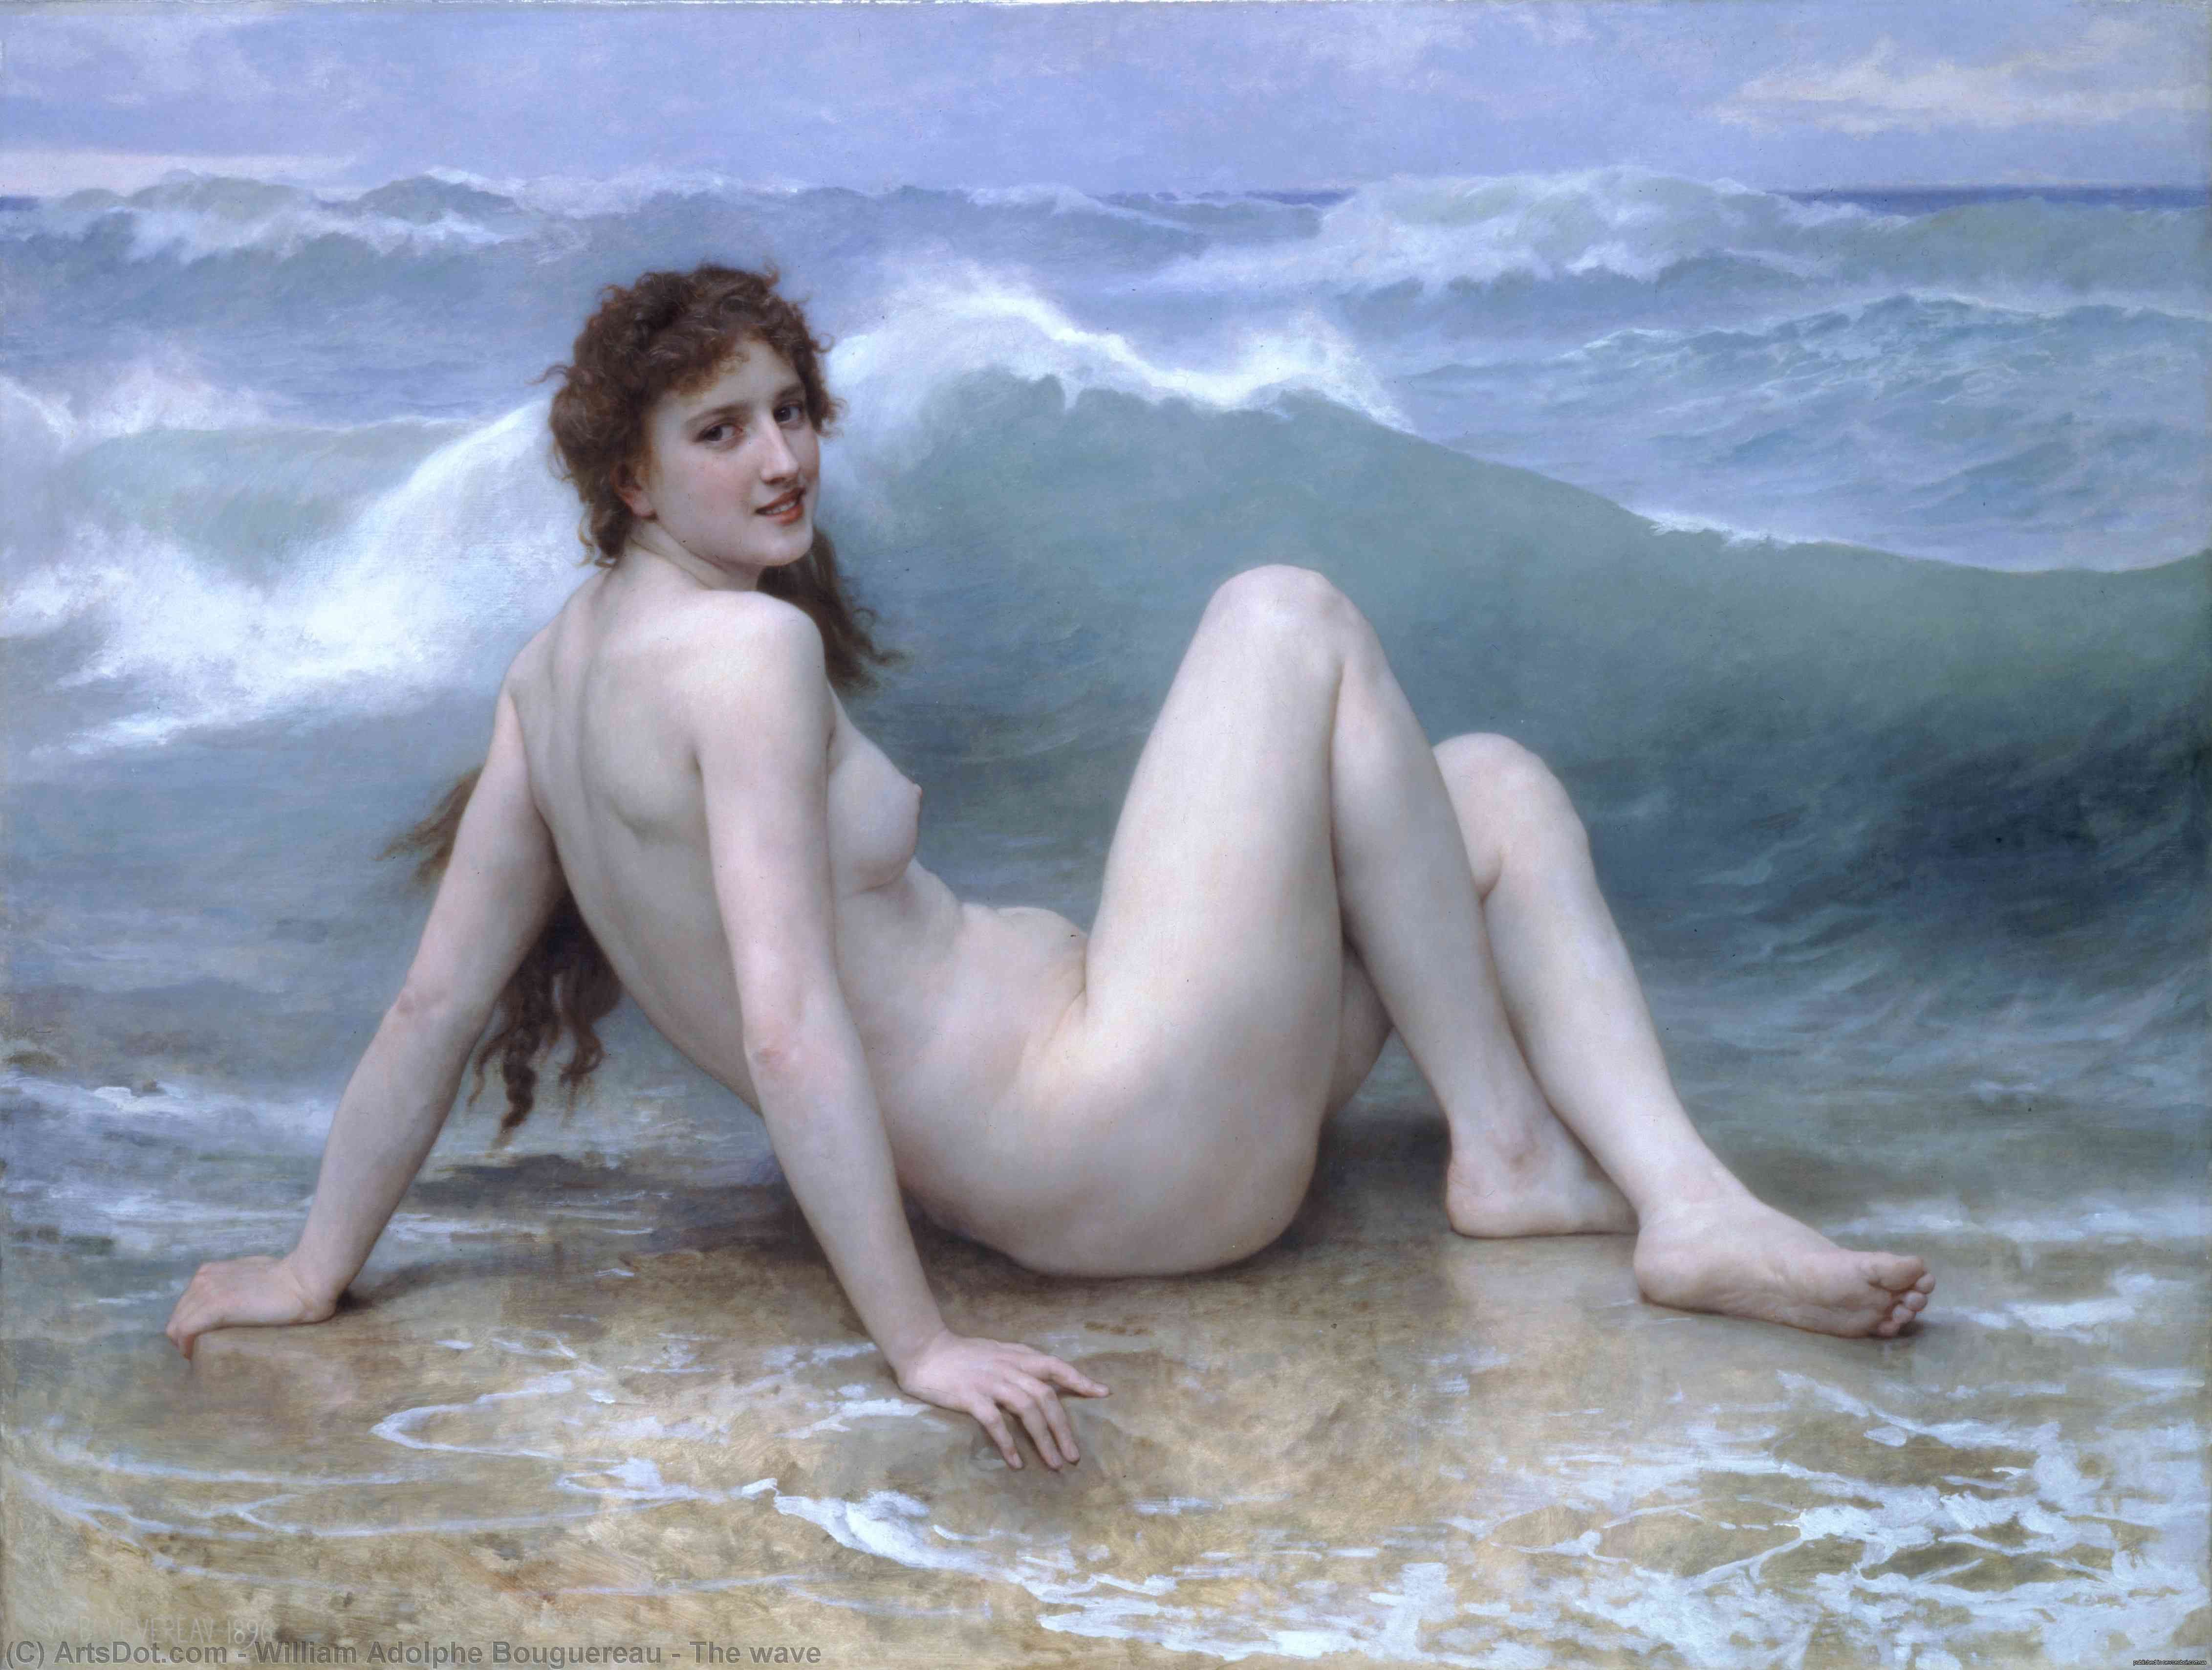 el de onda, 1896 de William Adolphe Bouguereau (1825-1905, France) | Reproducciones De Arte William Adolphe Bouguereau | ArtsDot.com